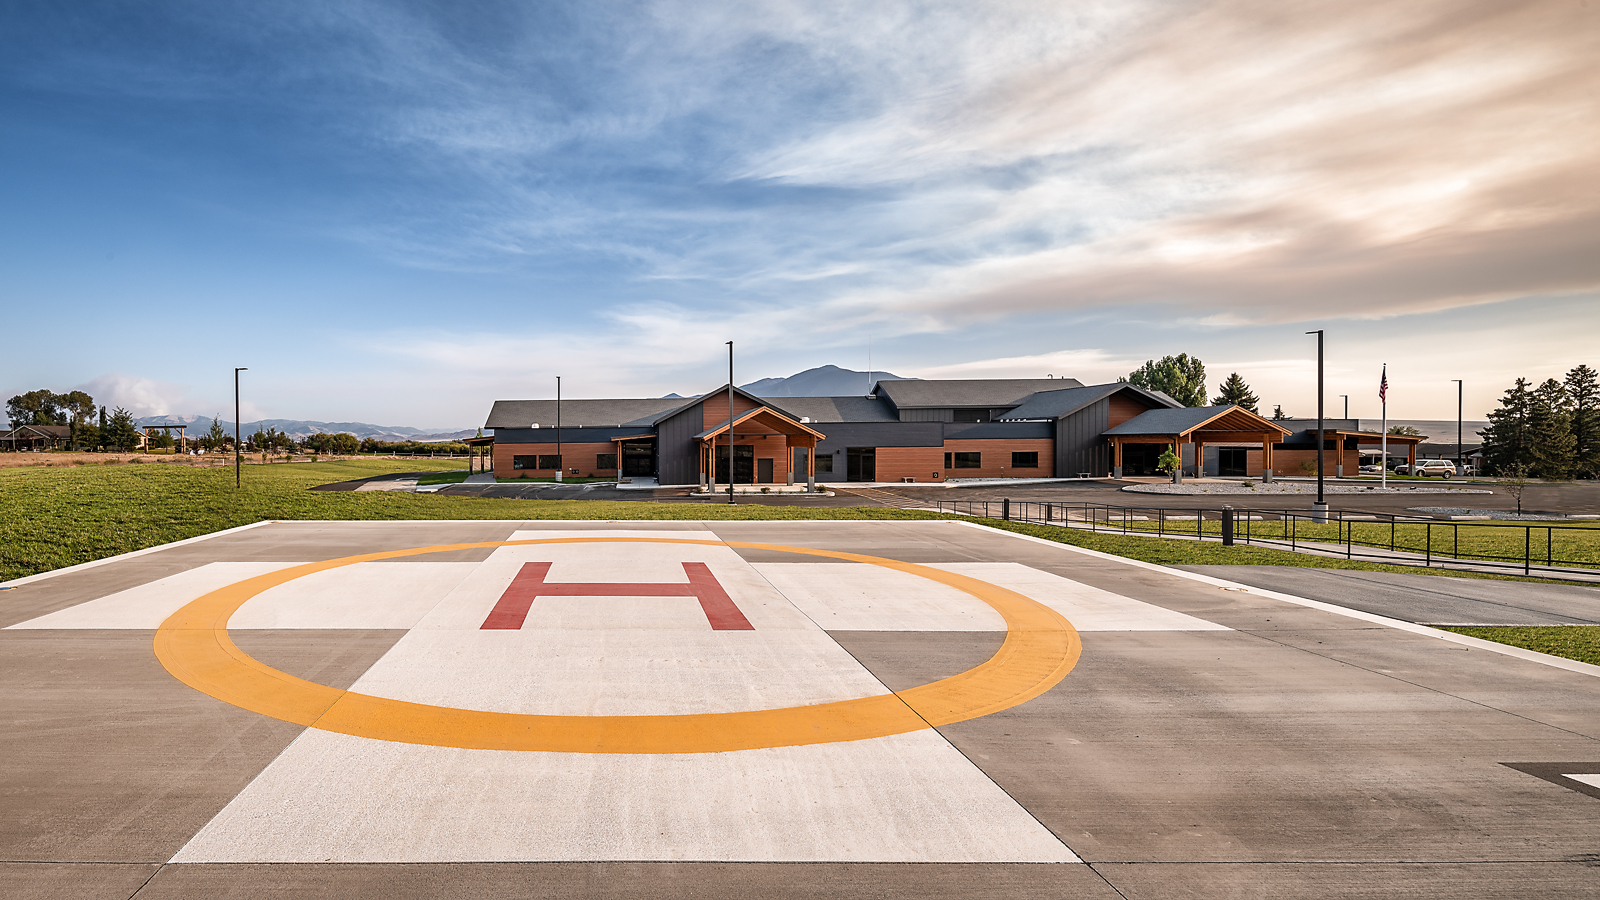 Ruby Valley Hospital - 1600 x 900px - Im